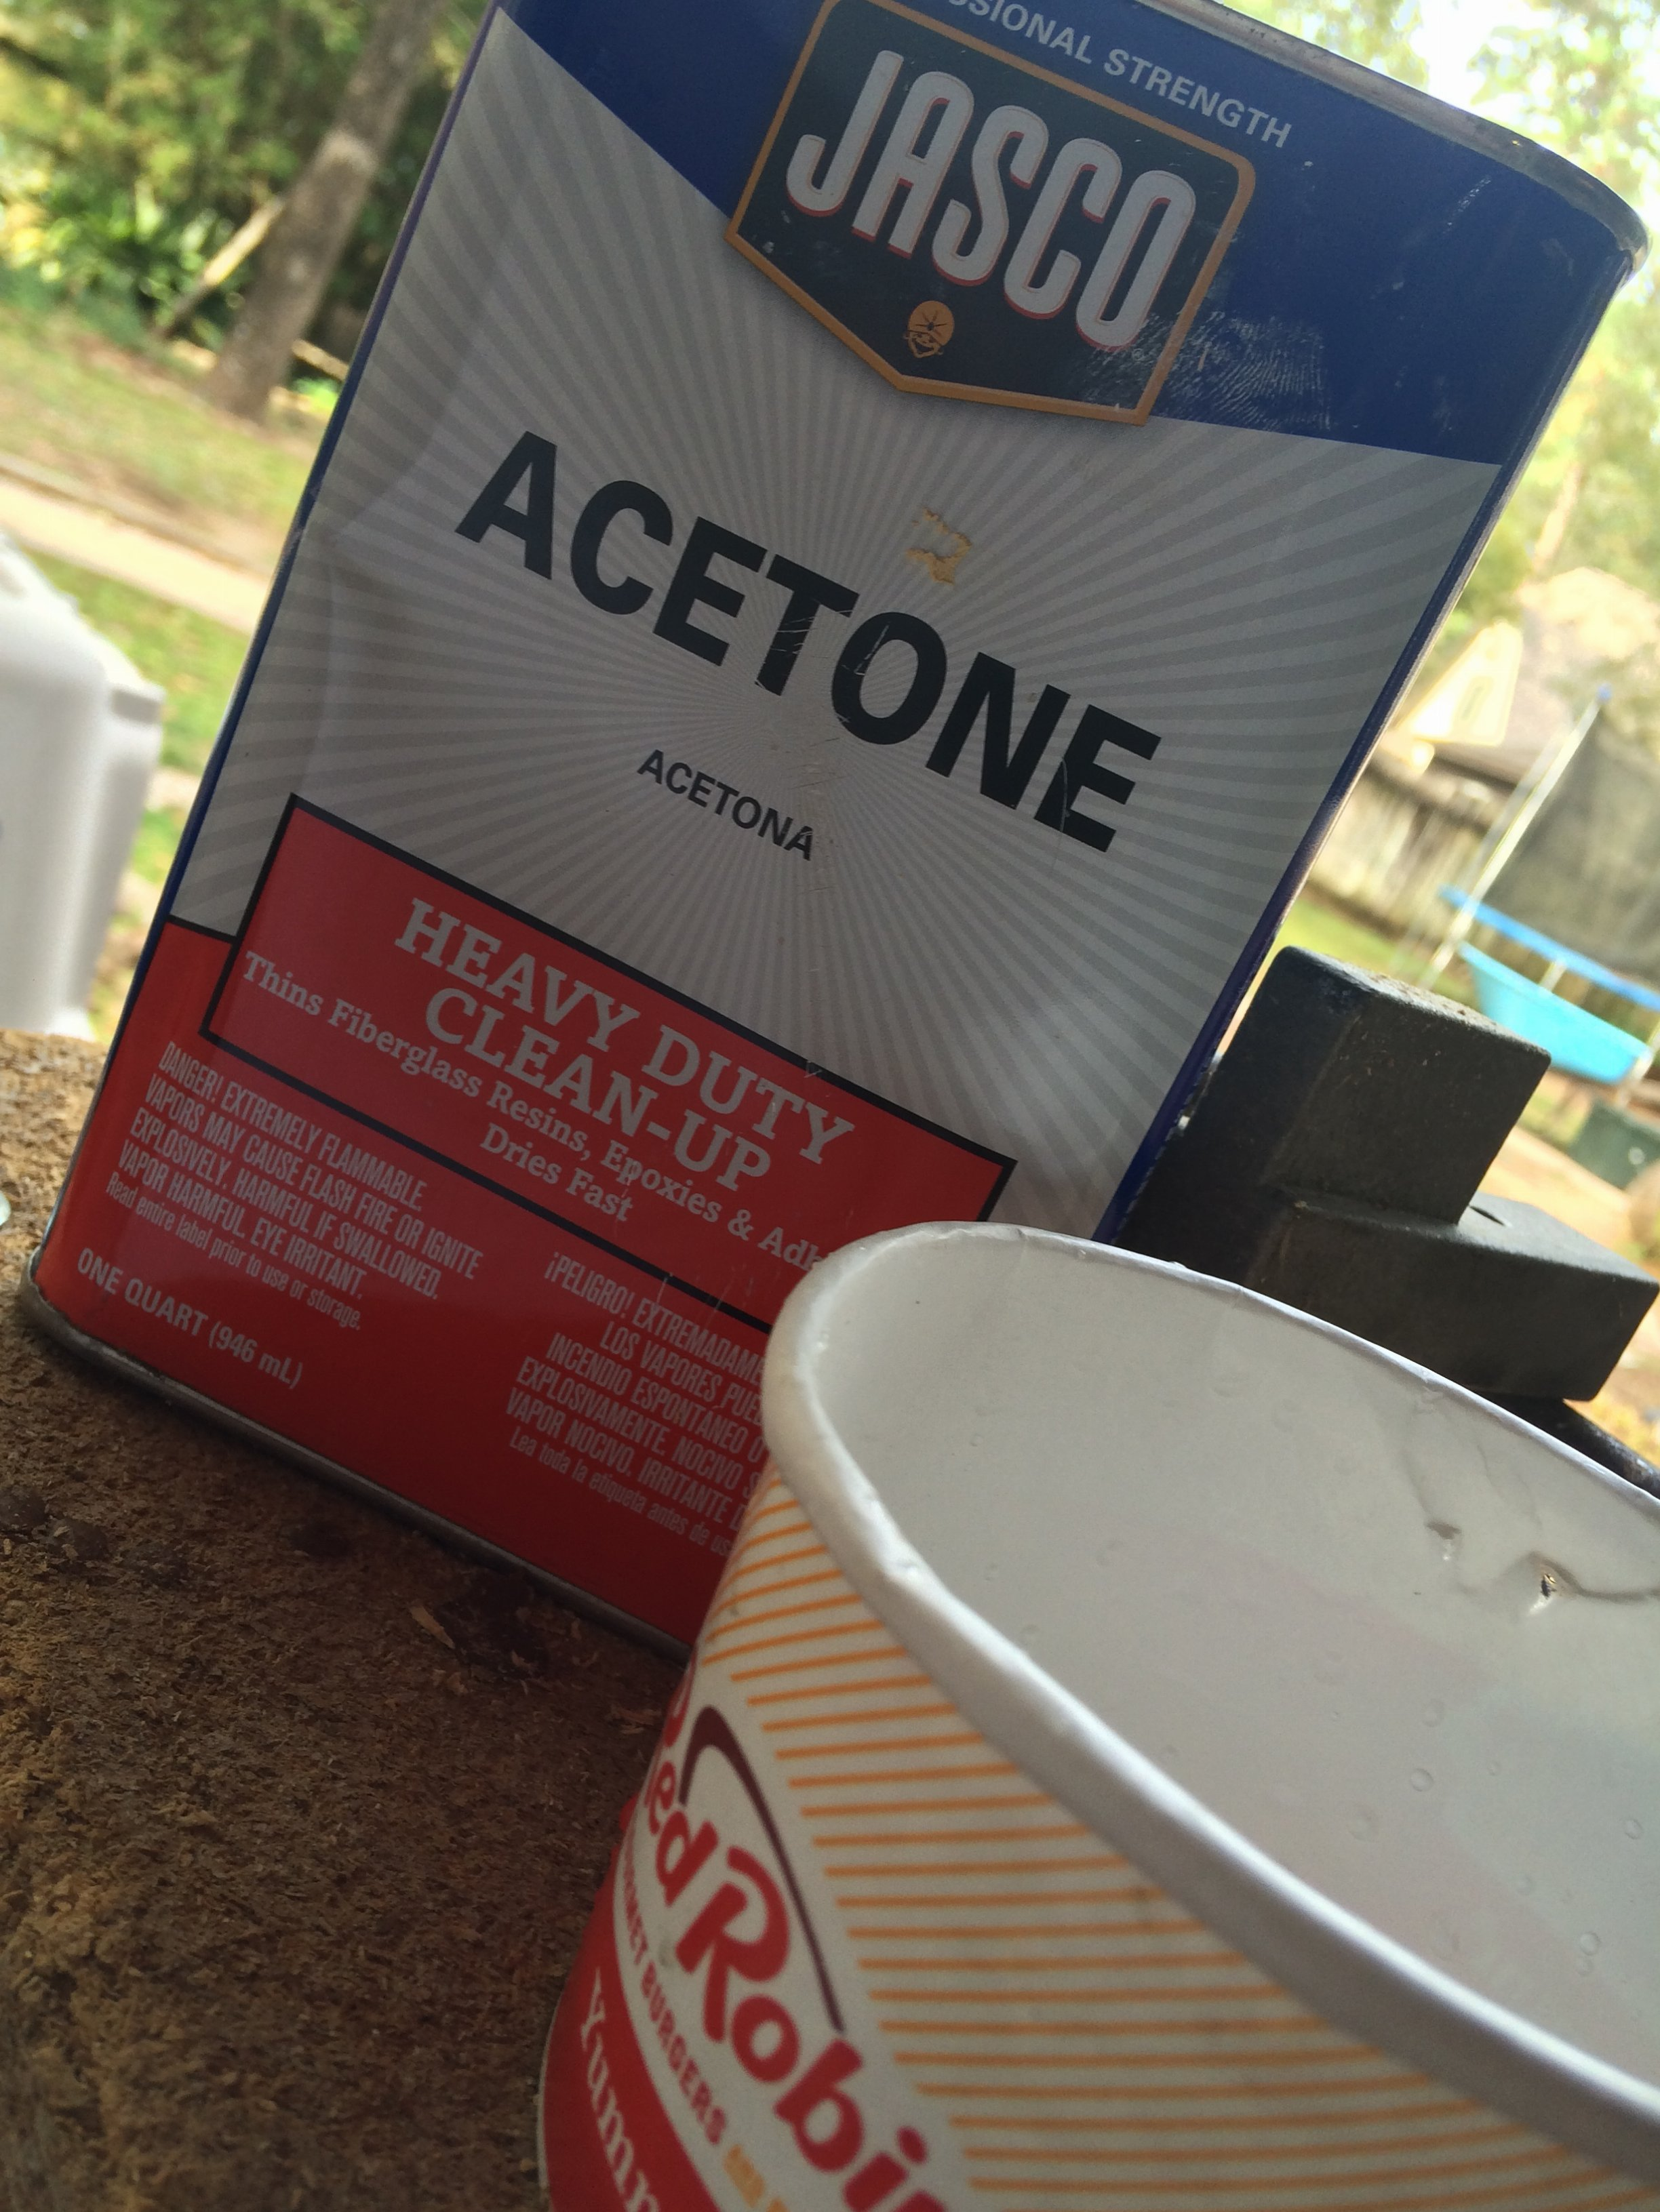 has anyone used acetone instead of alcohol to clean your